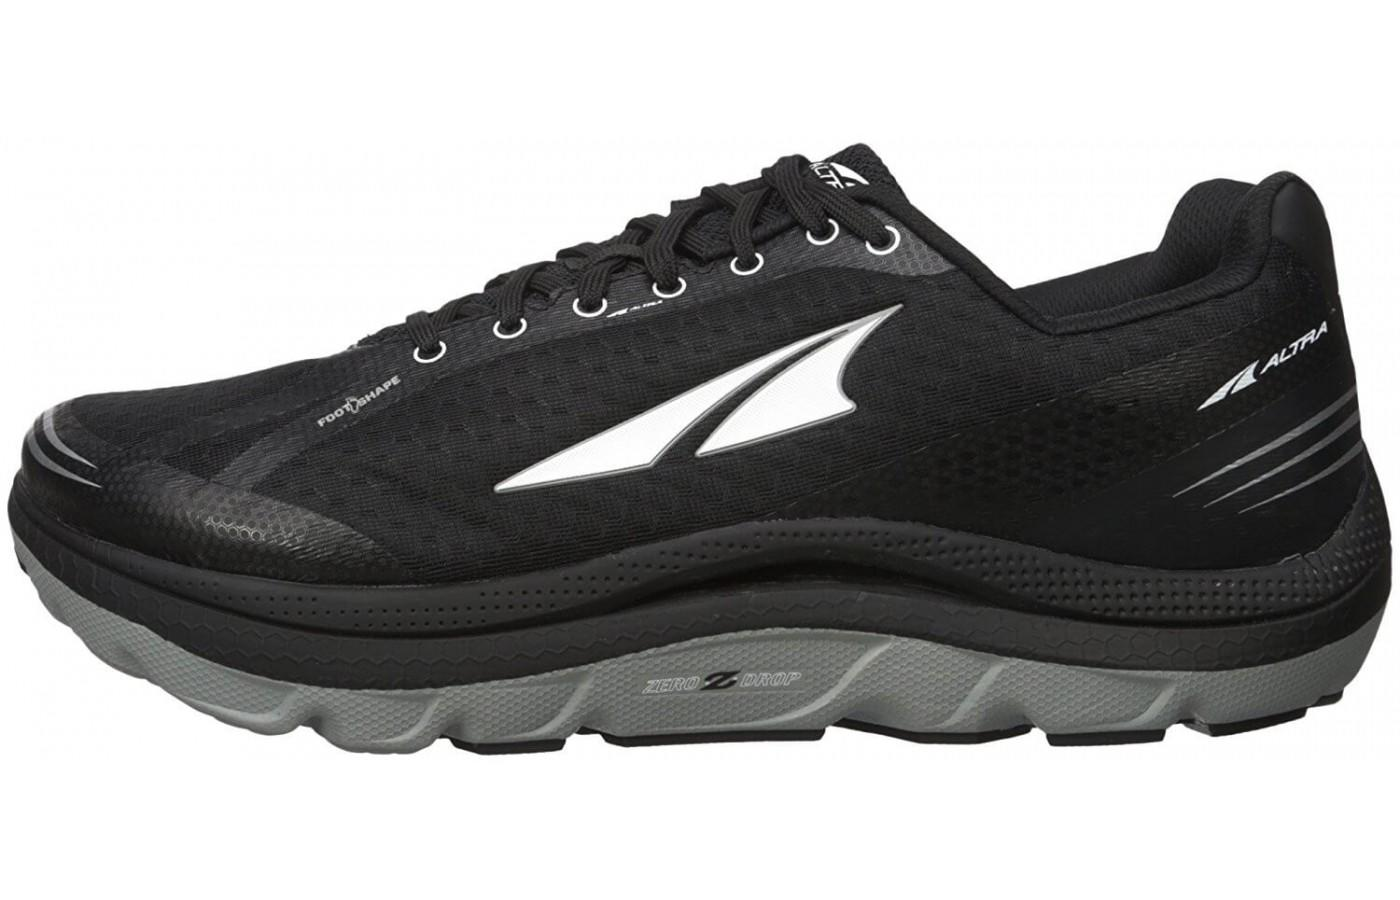 here is a side view of Altra Paradigm 2.0